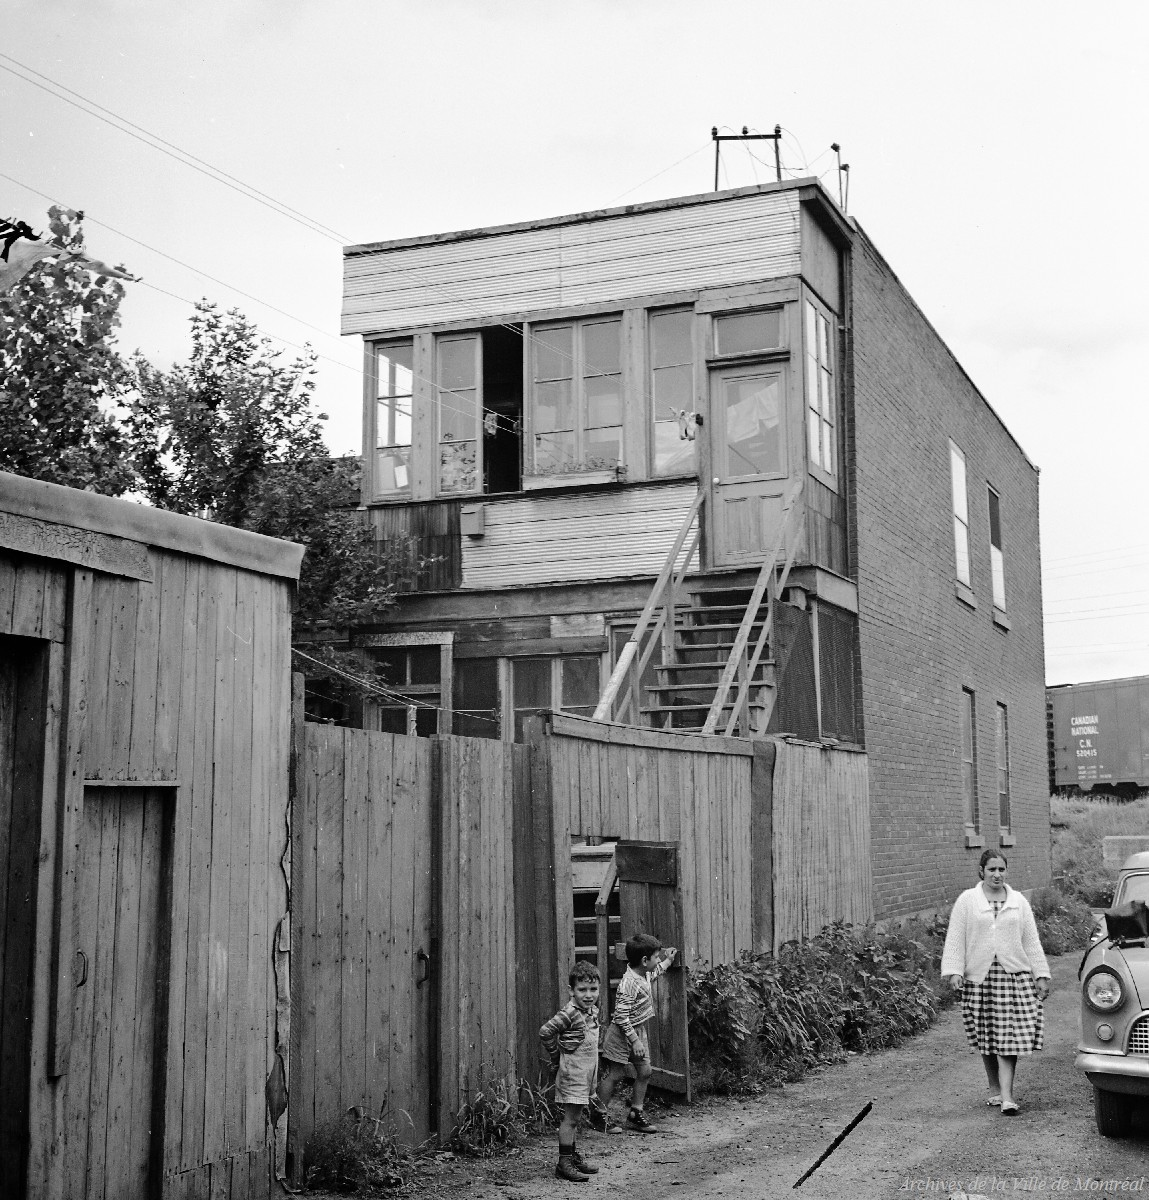 About 300 families lived in Goose Village in the 1960s. (Flickr/Archives de Montréal)